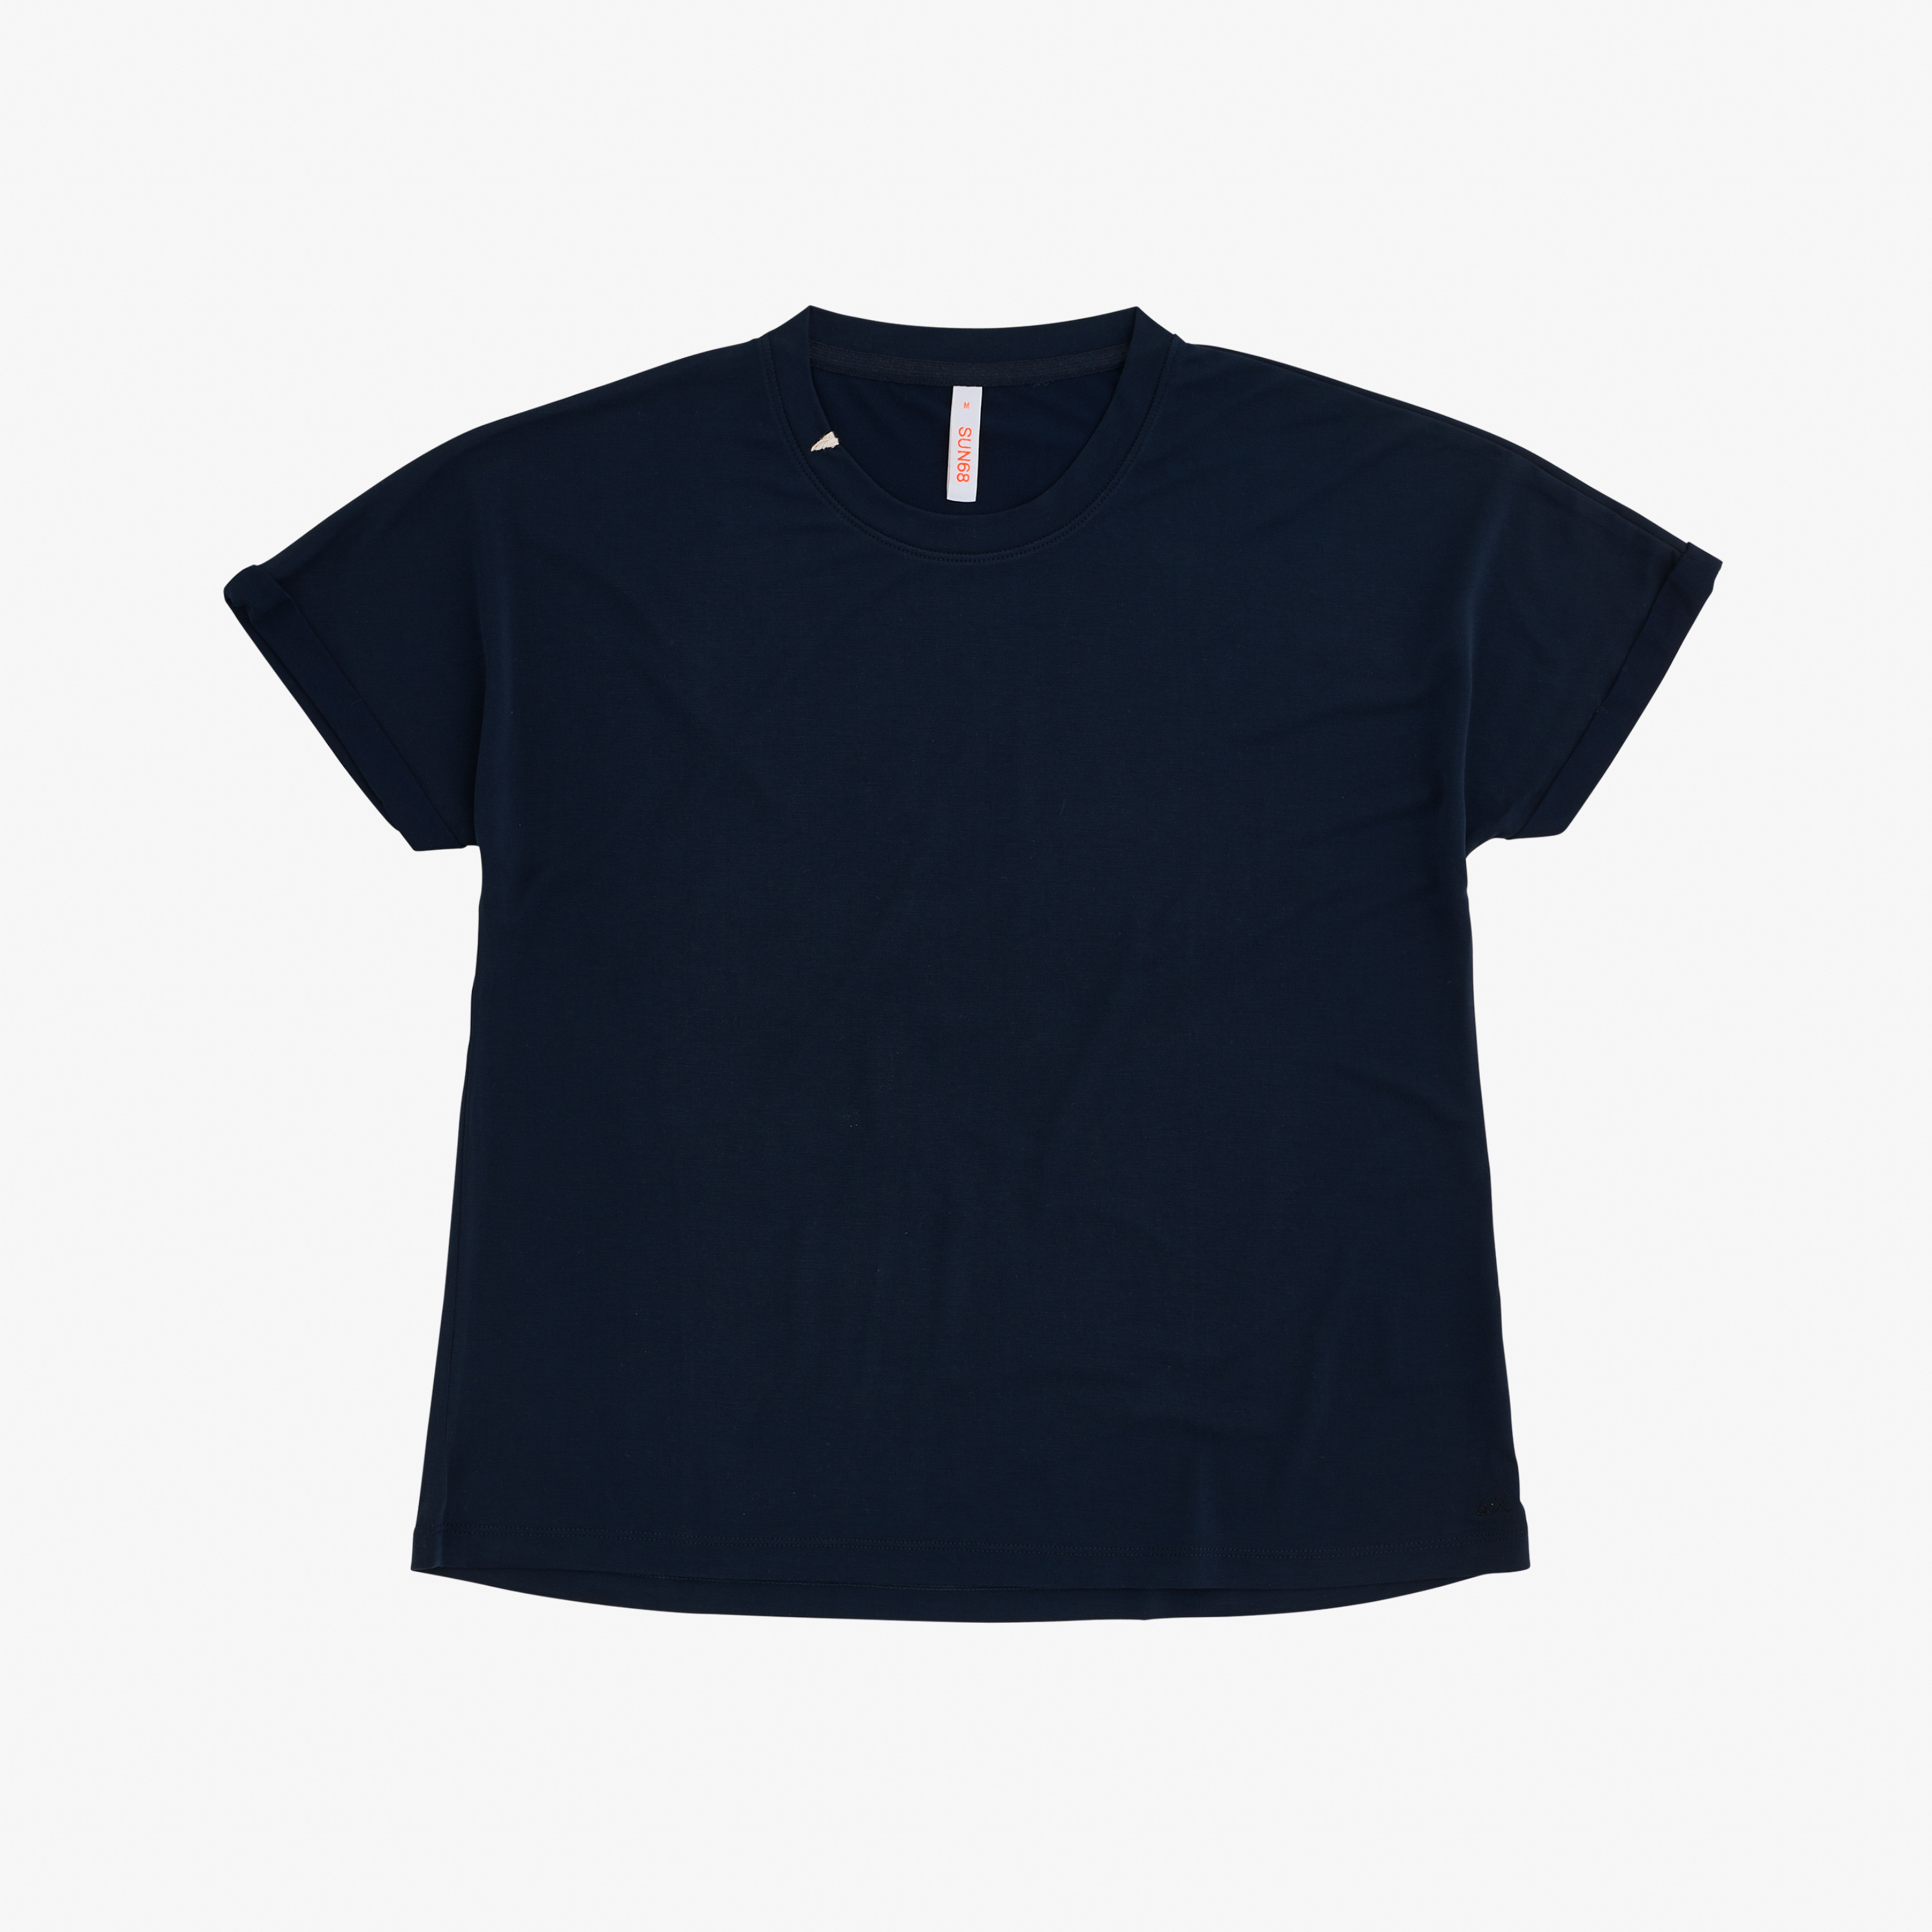 OVER T-SHIRT S/S NAVY BLUE